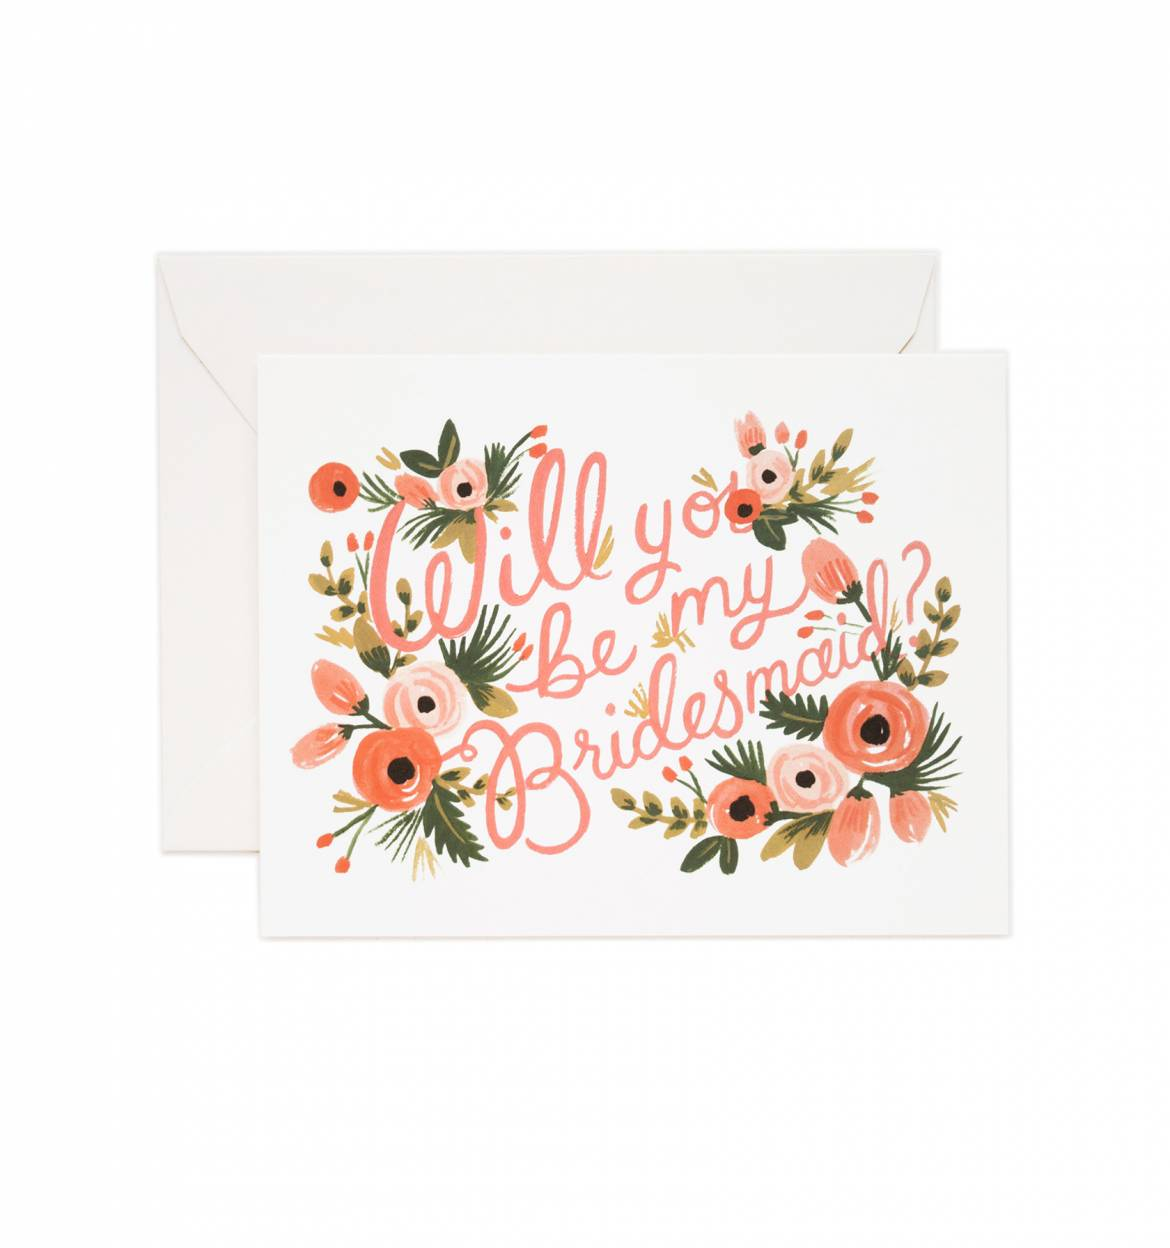 rifle-paper-co-will-you-be-my-bridesmaid-wedding-card-01-n_1.jpg